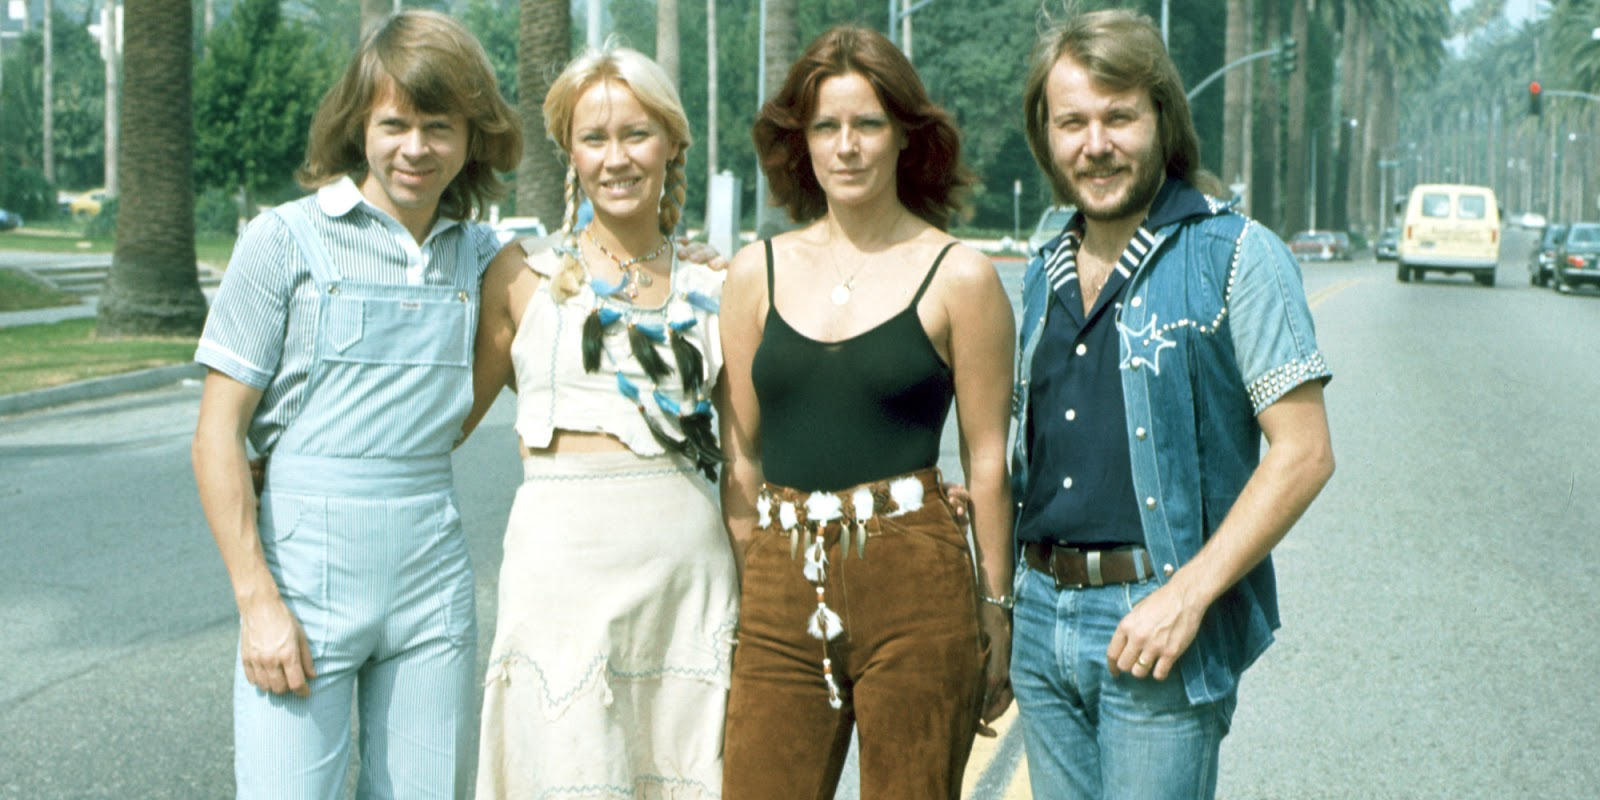 Learn How to Dress Up Like ABBA: 11 Fashion Styles That Make